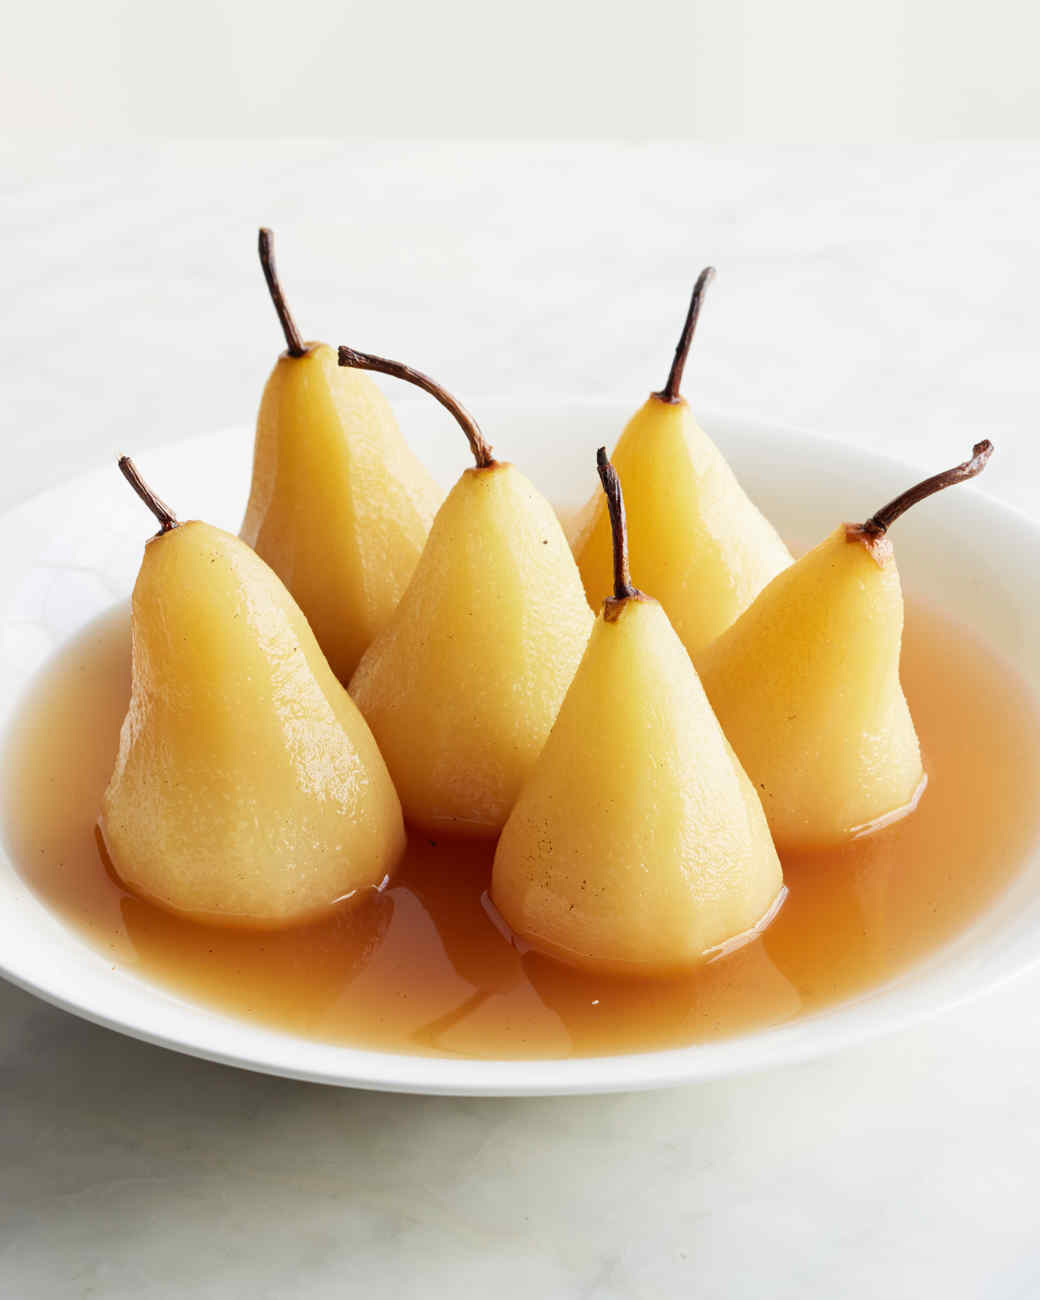 How do you cook pears?